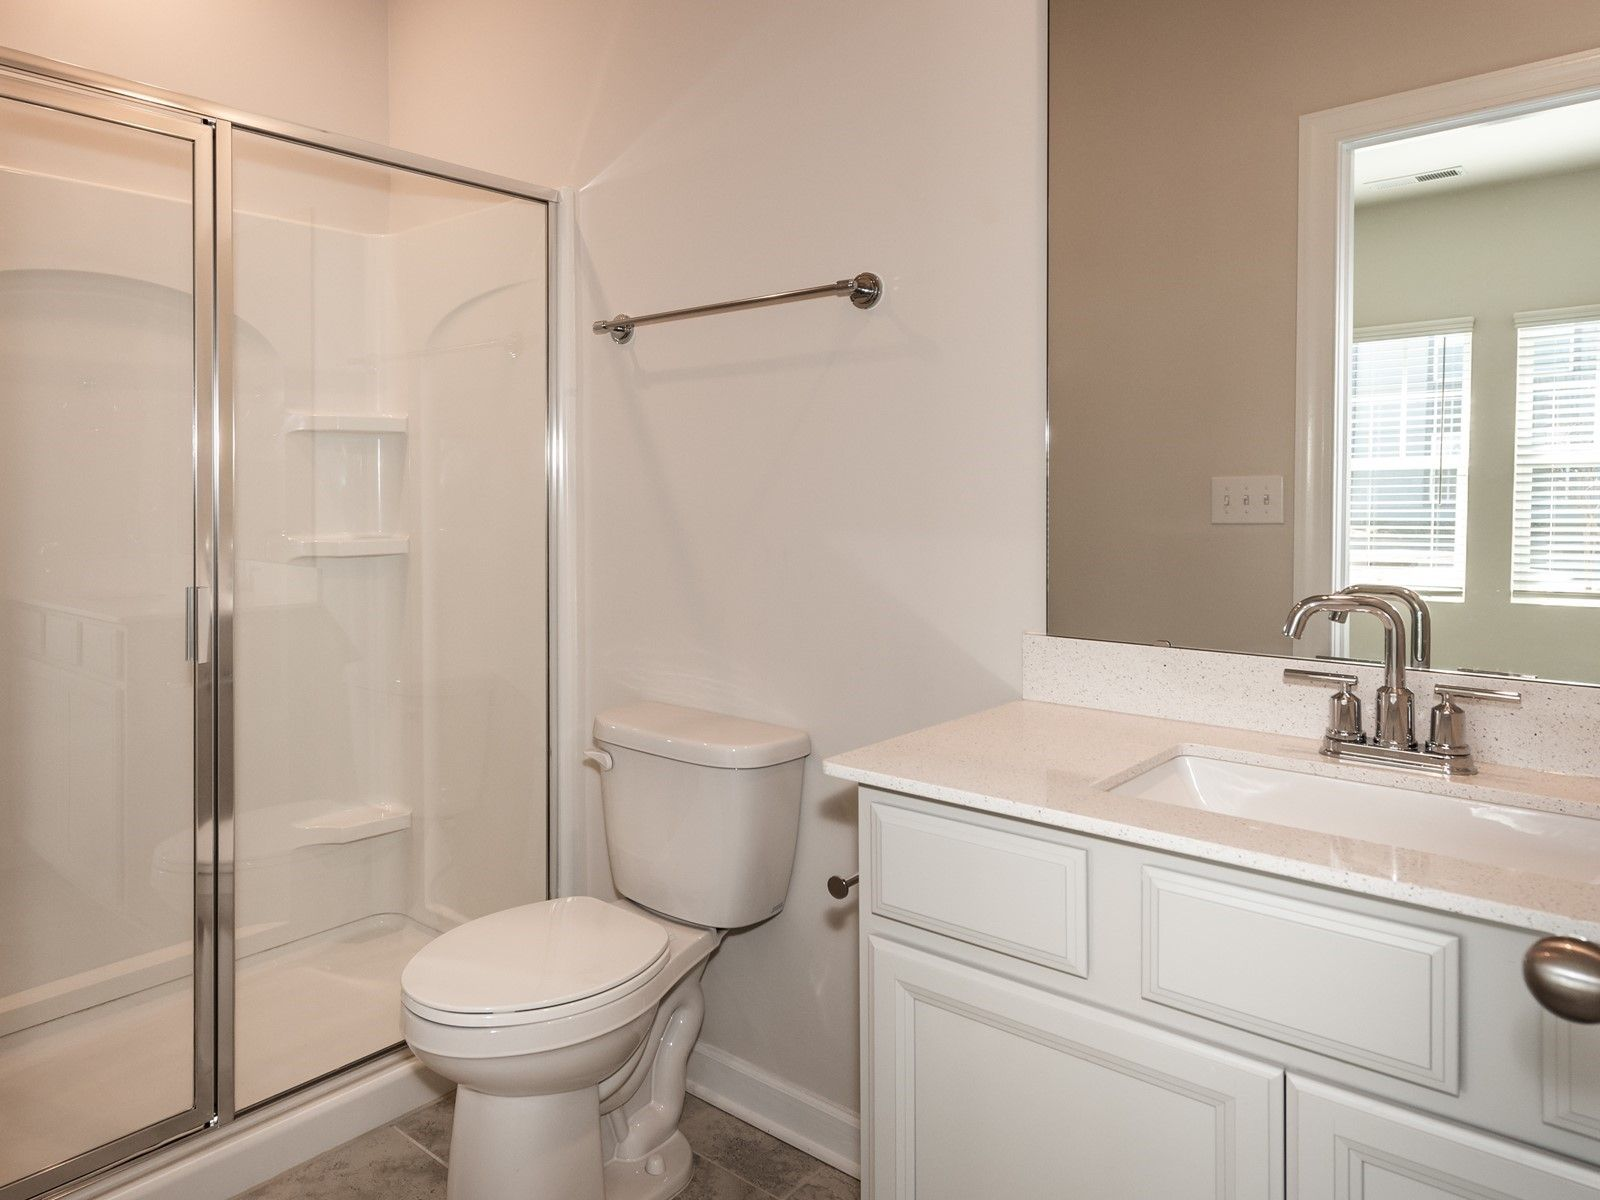 Bathroom featured in the Farmington By Meritage Homes in Charlotte, NC